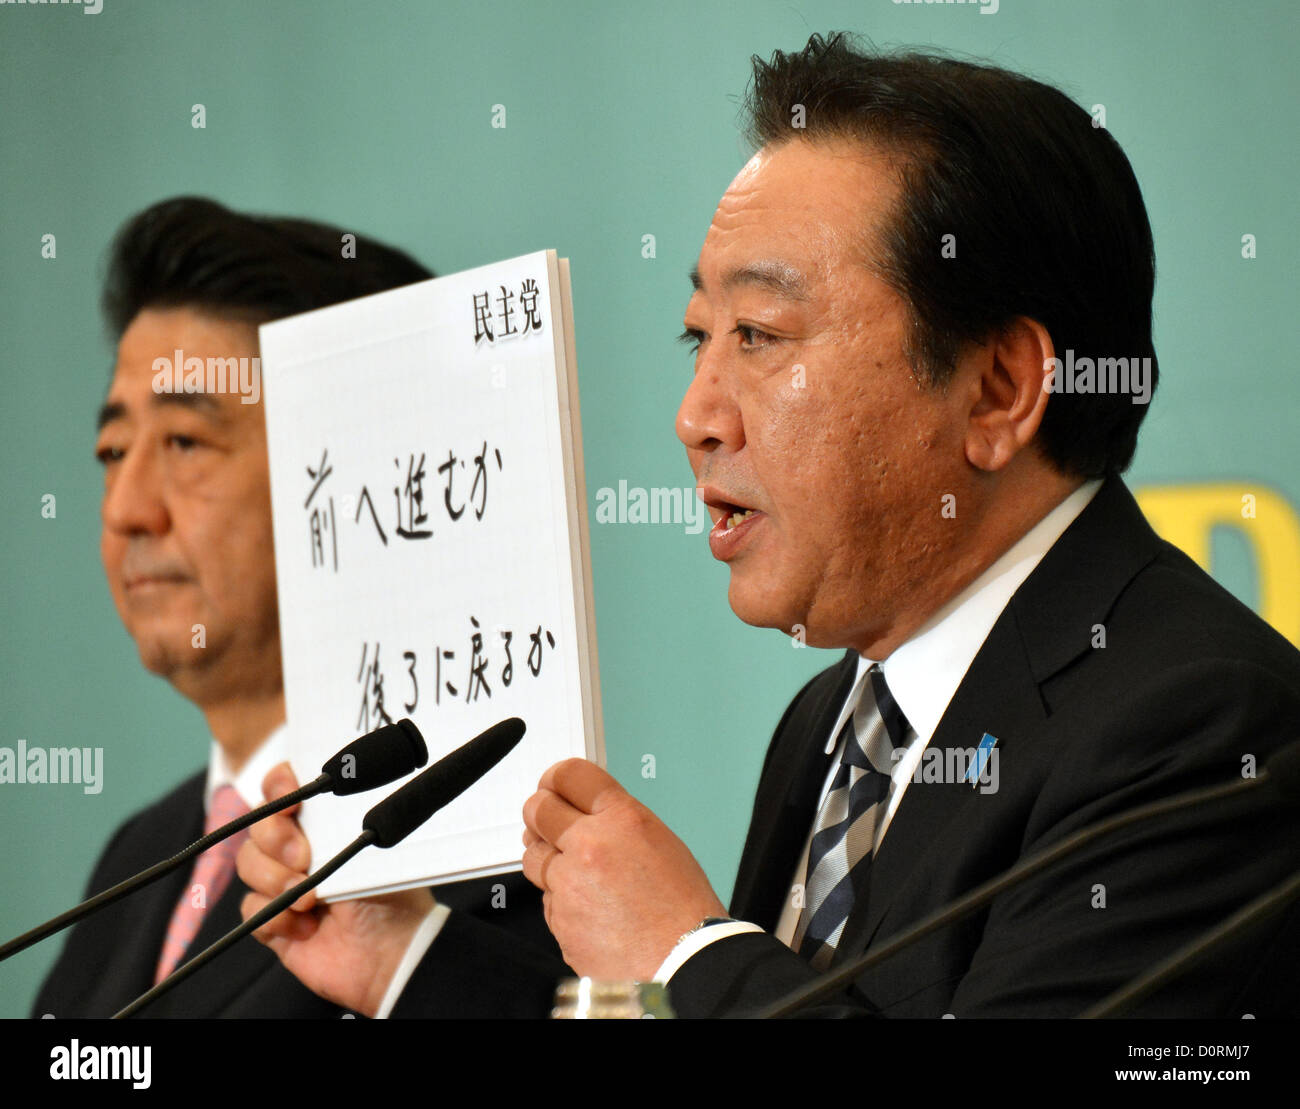 November 30, 2012, Tokyo, Japan - Japan's Prime Minister Yoshihiko Noda holds up a baord scribbled with the - Stock Image